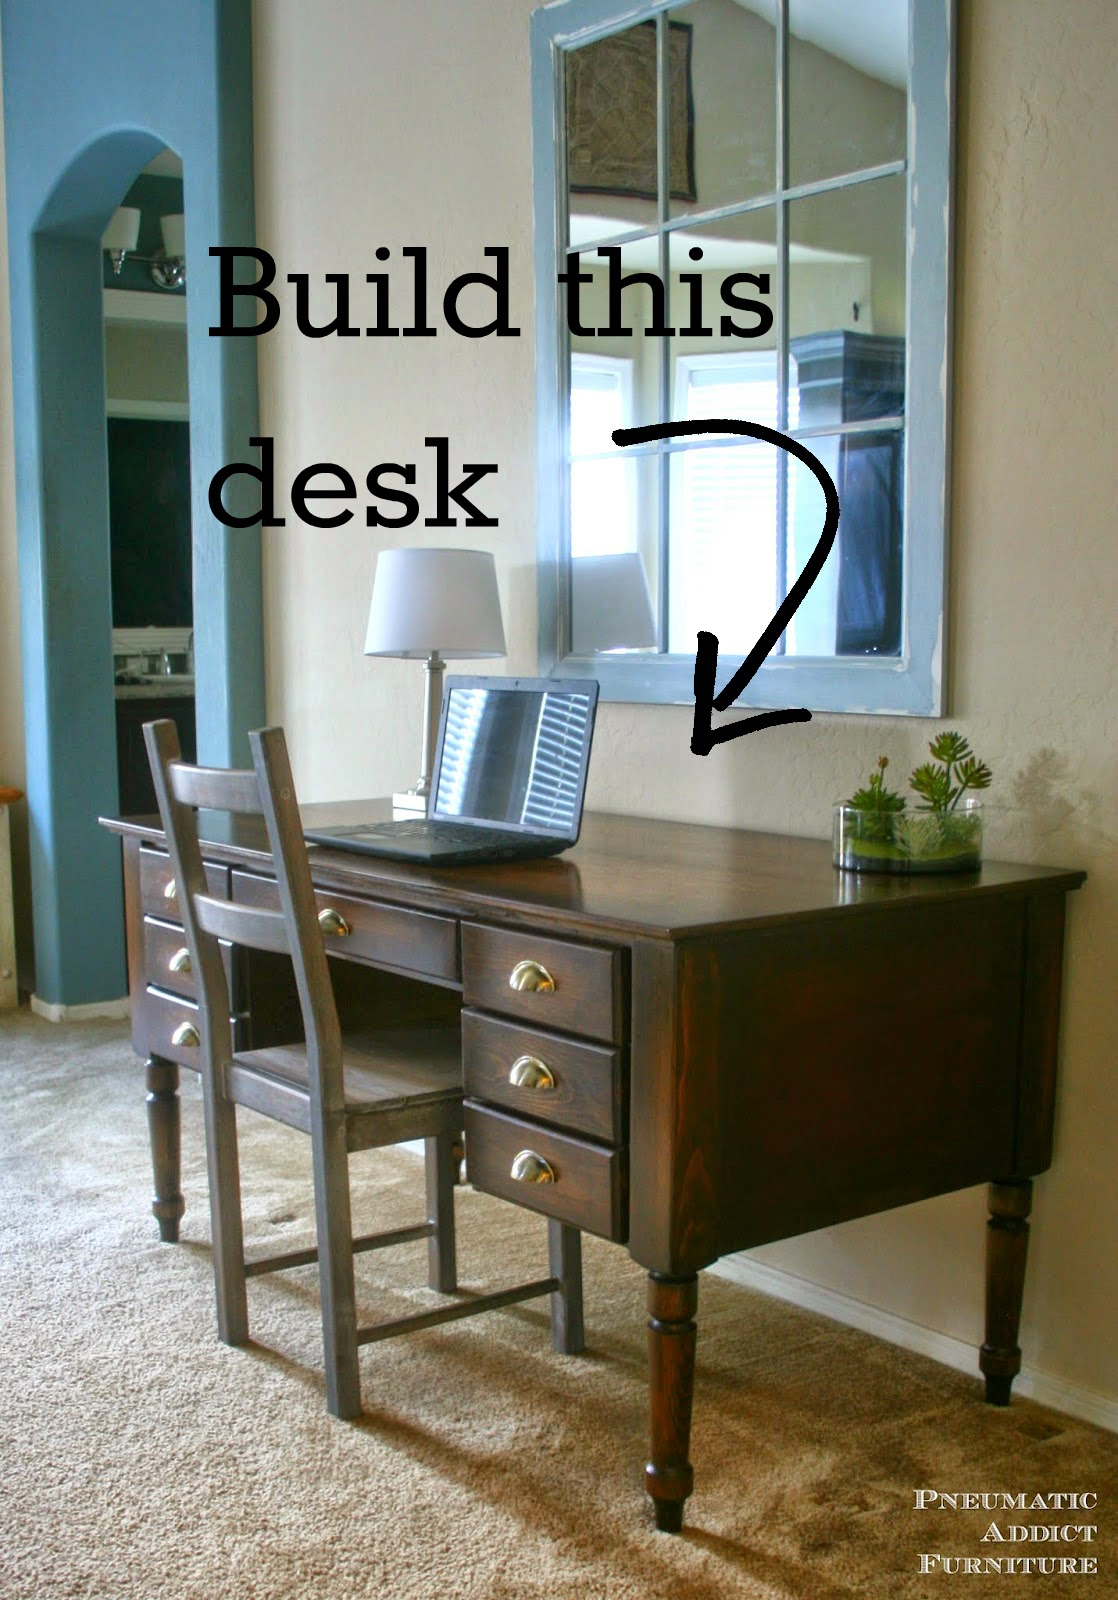 Don't spend hundreds on a designer desk! Build you own, solid wood Printer's desk for a fraction of the price. Free building plans included.